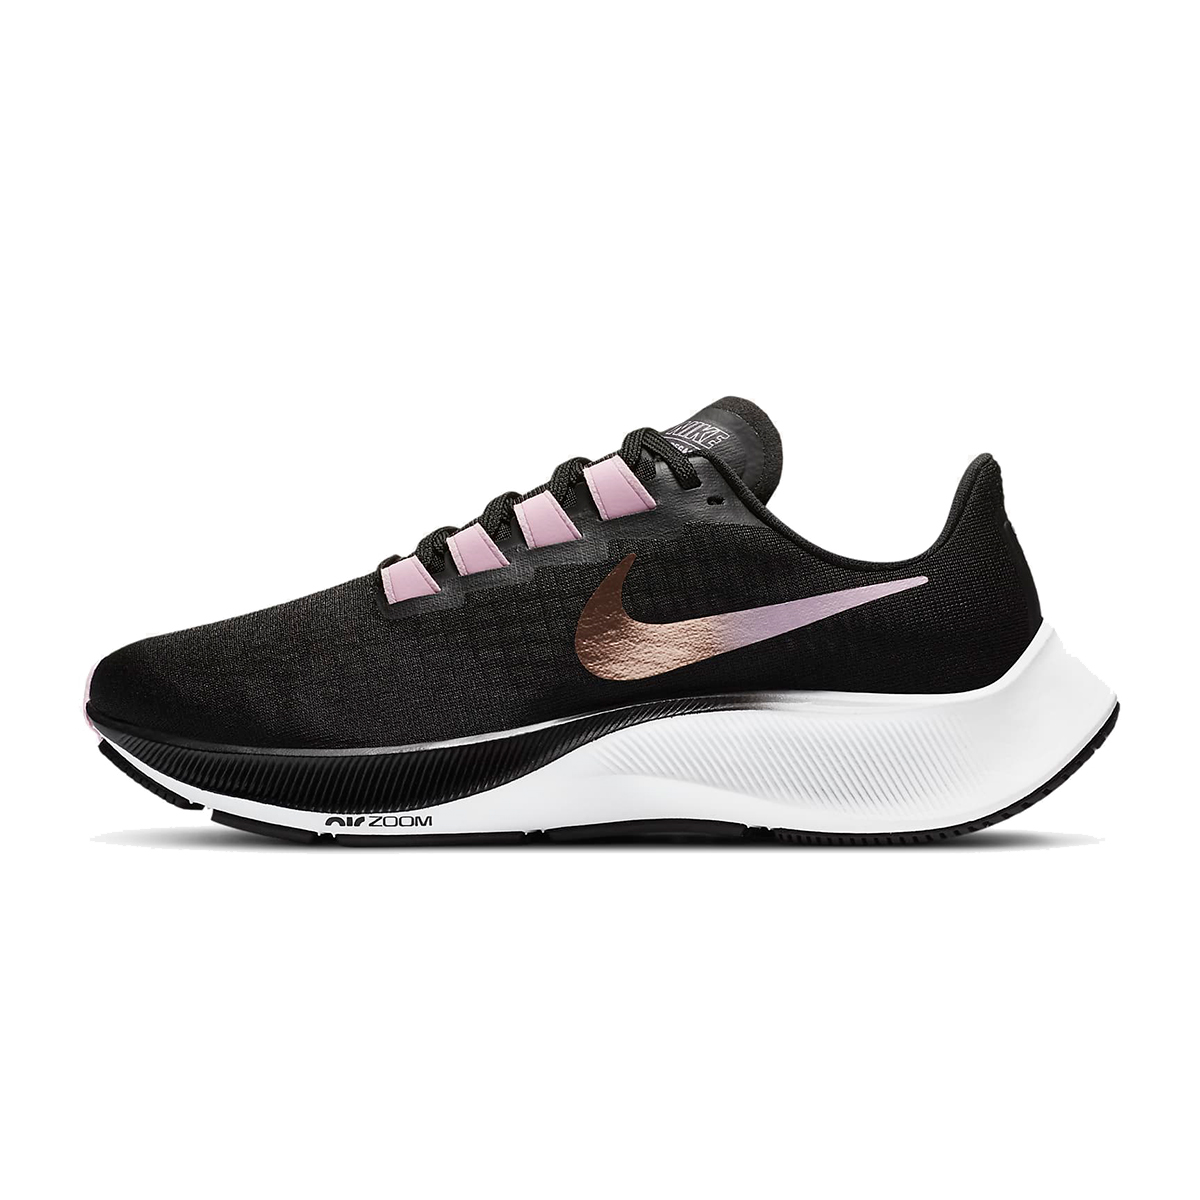 Women's Nike Air Zoom Pegasus 37 Running Shoe - Color: Black/Light Arctic Pink/White/Metallic Red Bronze - Size: 6 - Width: Regular, Black/Light Arctic Pink/White/Metallic Red Bronze, large, image 2